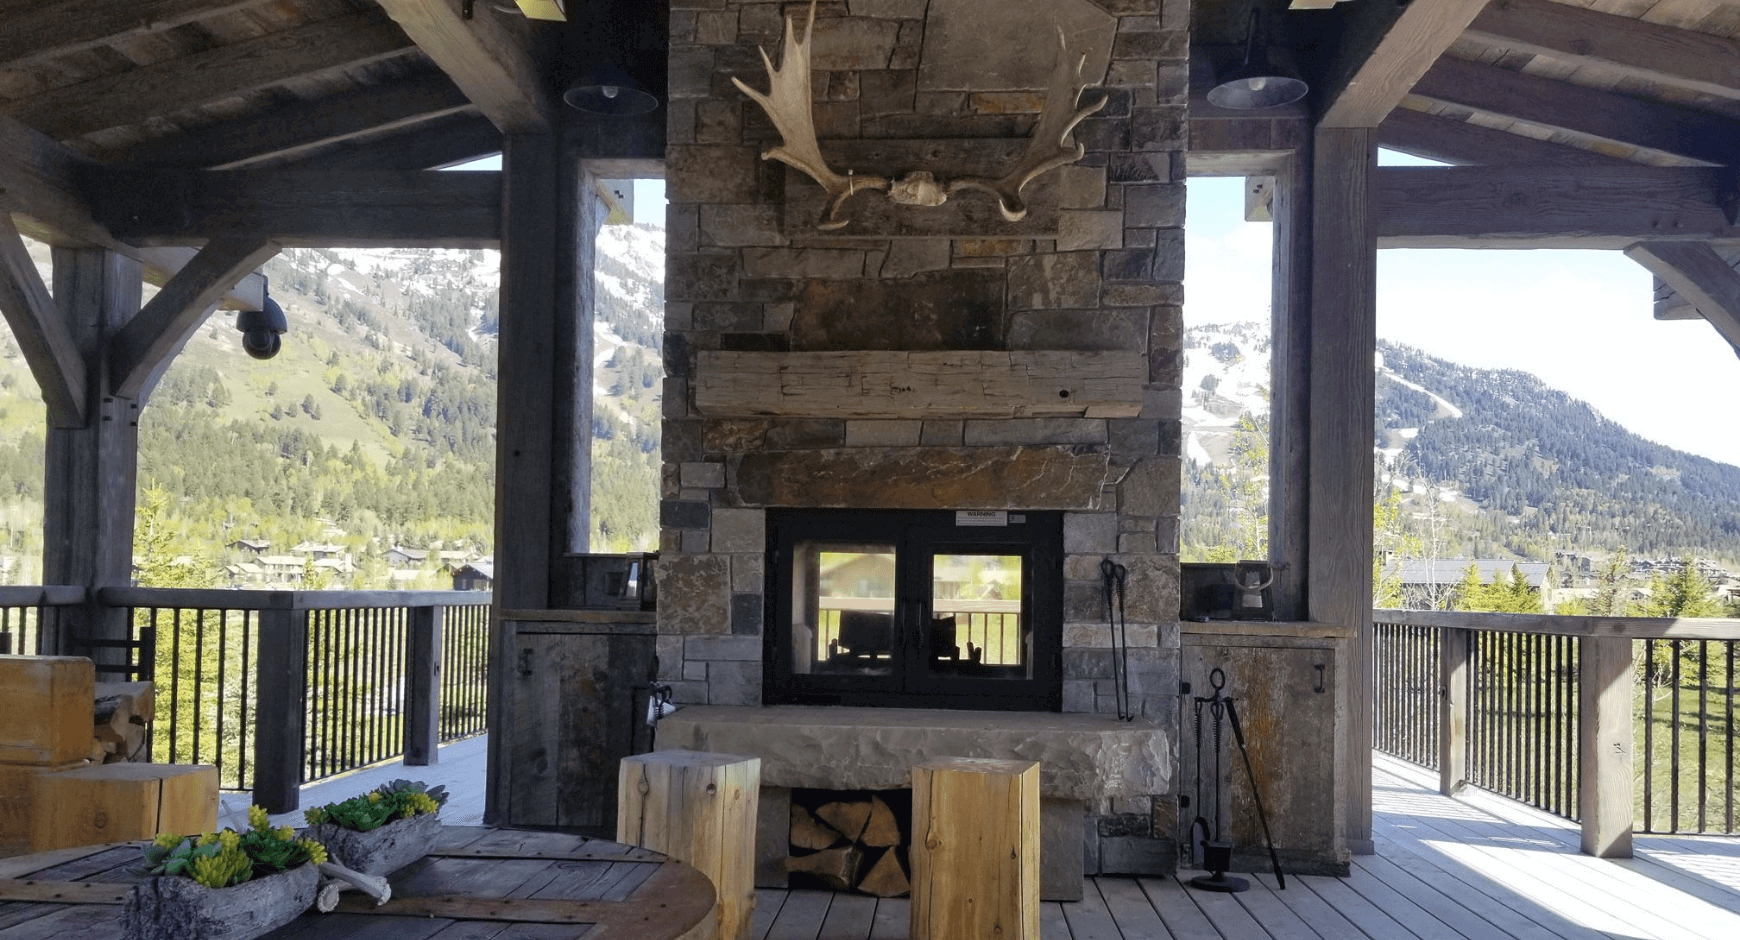 A Deck Fireplace Design for the Outdoorsy Mountain Dweller